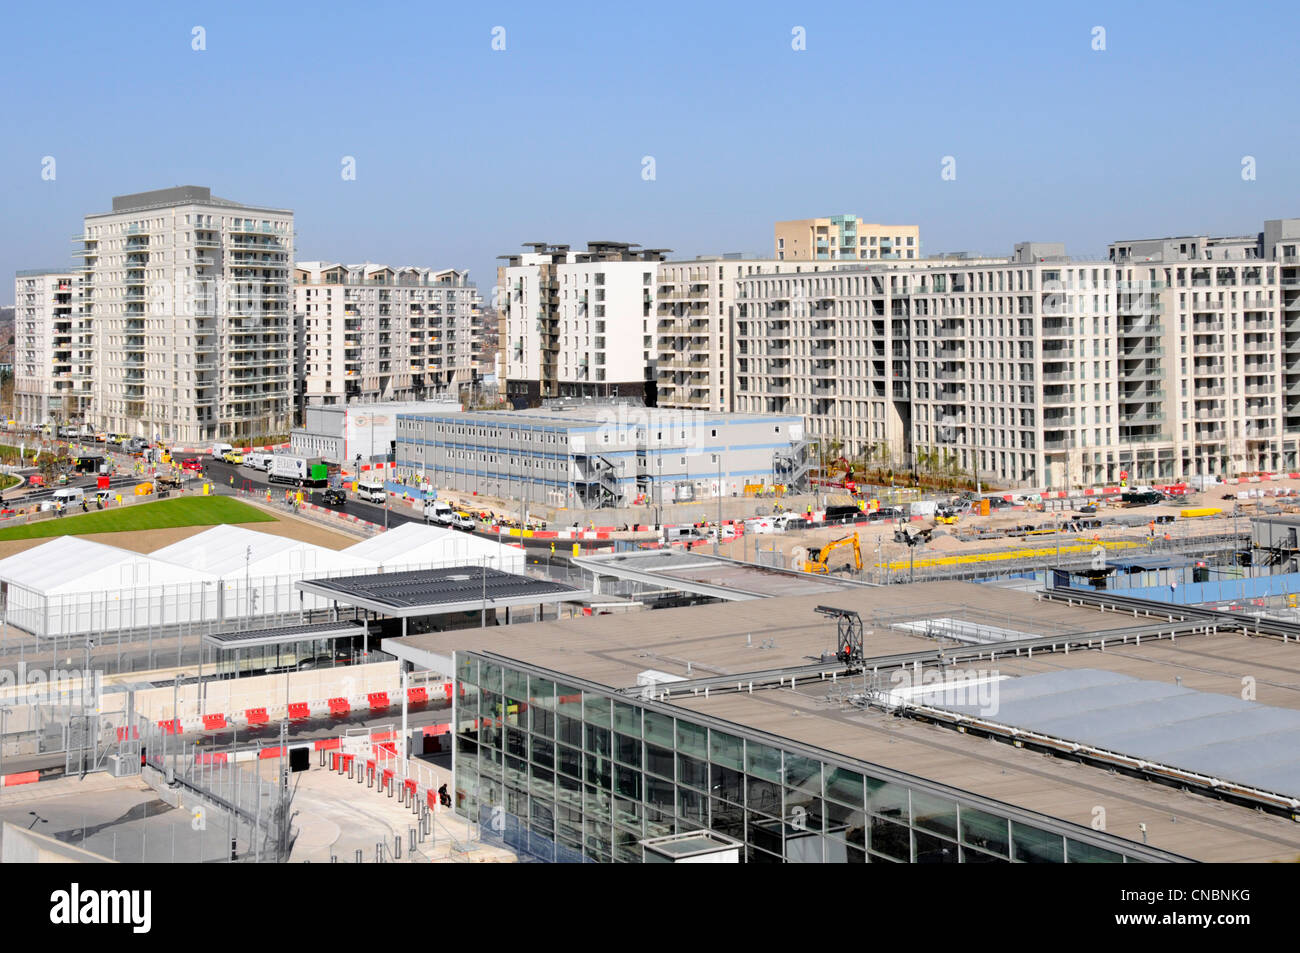 London 2012 Olympic athletes village building site with temporary site offices & Stratford International station - Stock Image